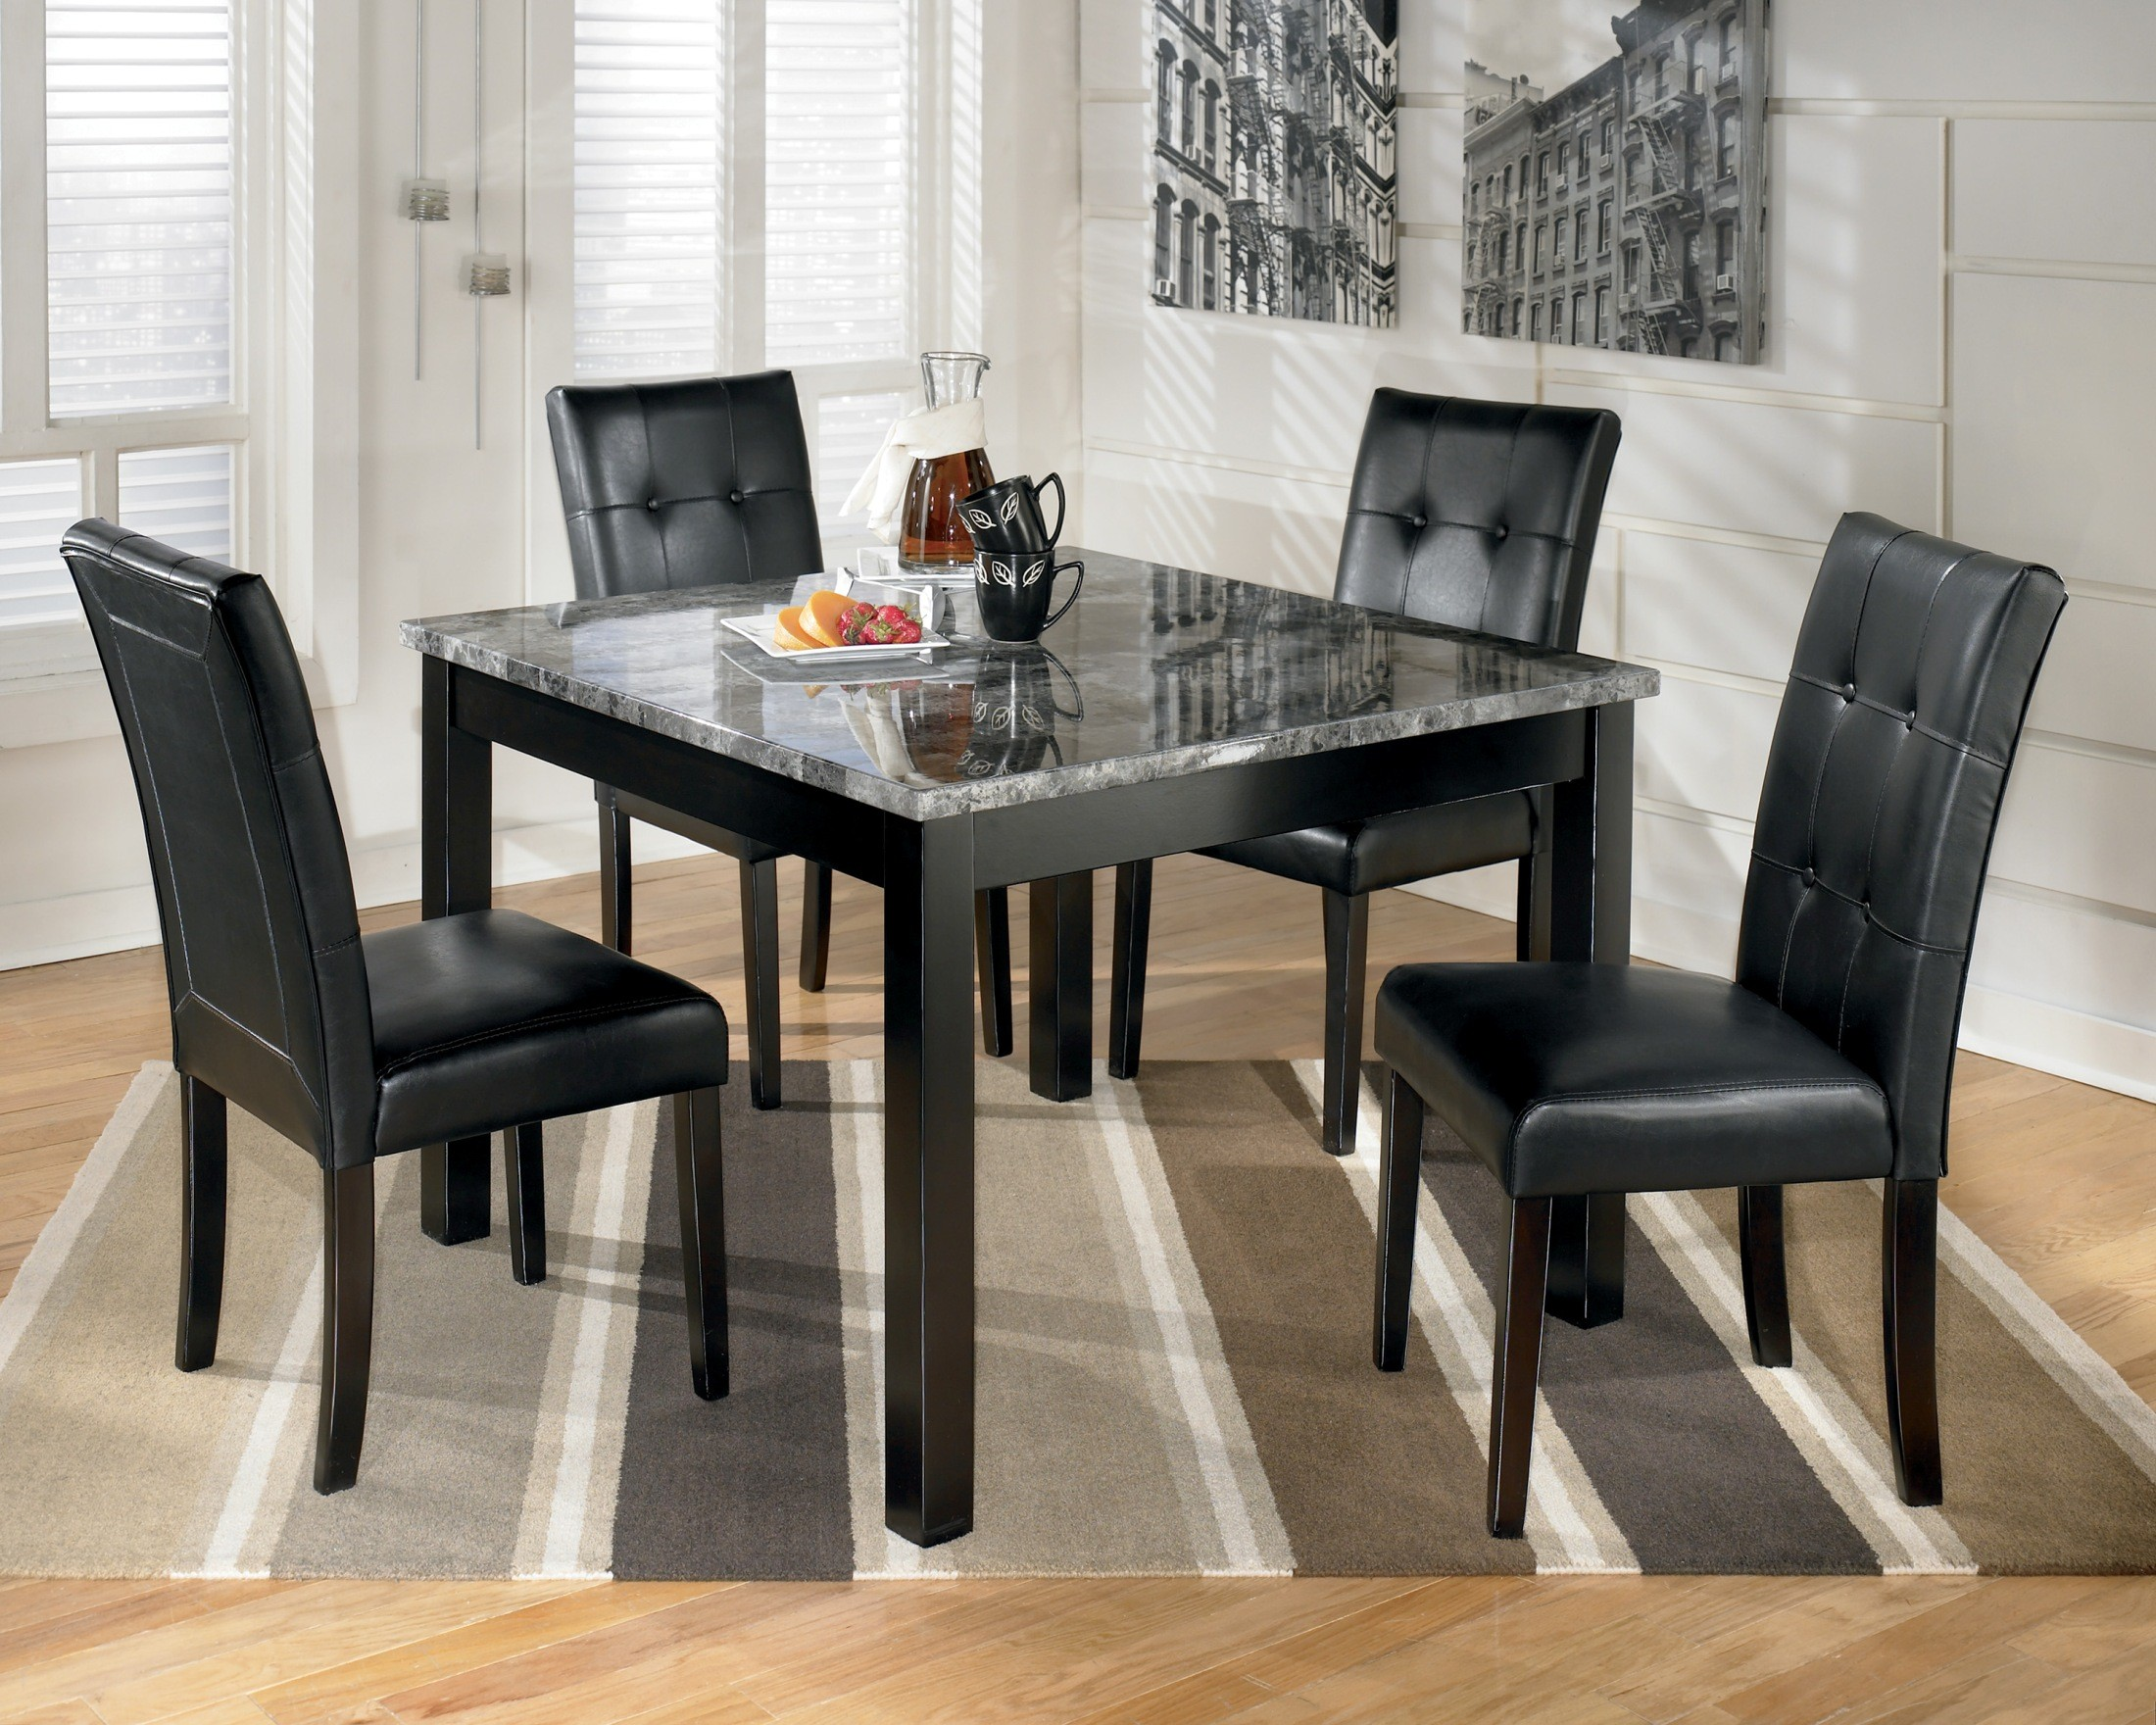 Granite Kitchen Table Sets Maysville Square Dining Room Table Set From Ashley D154 225